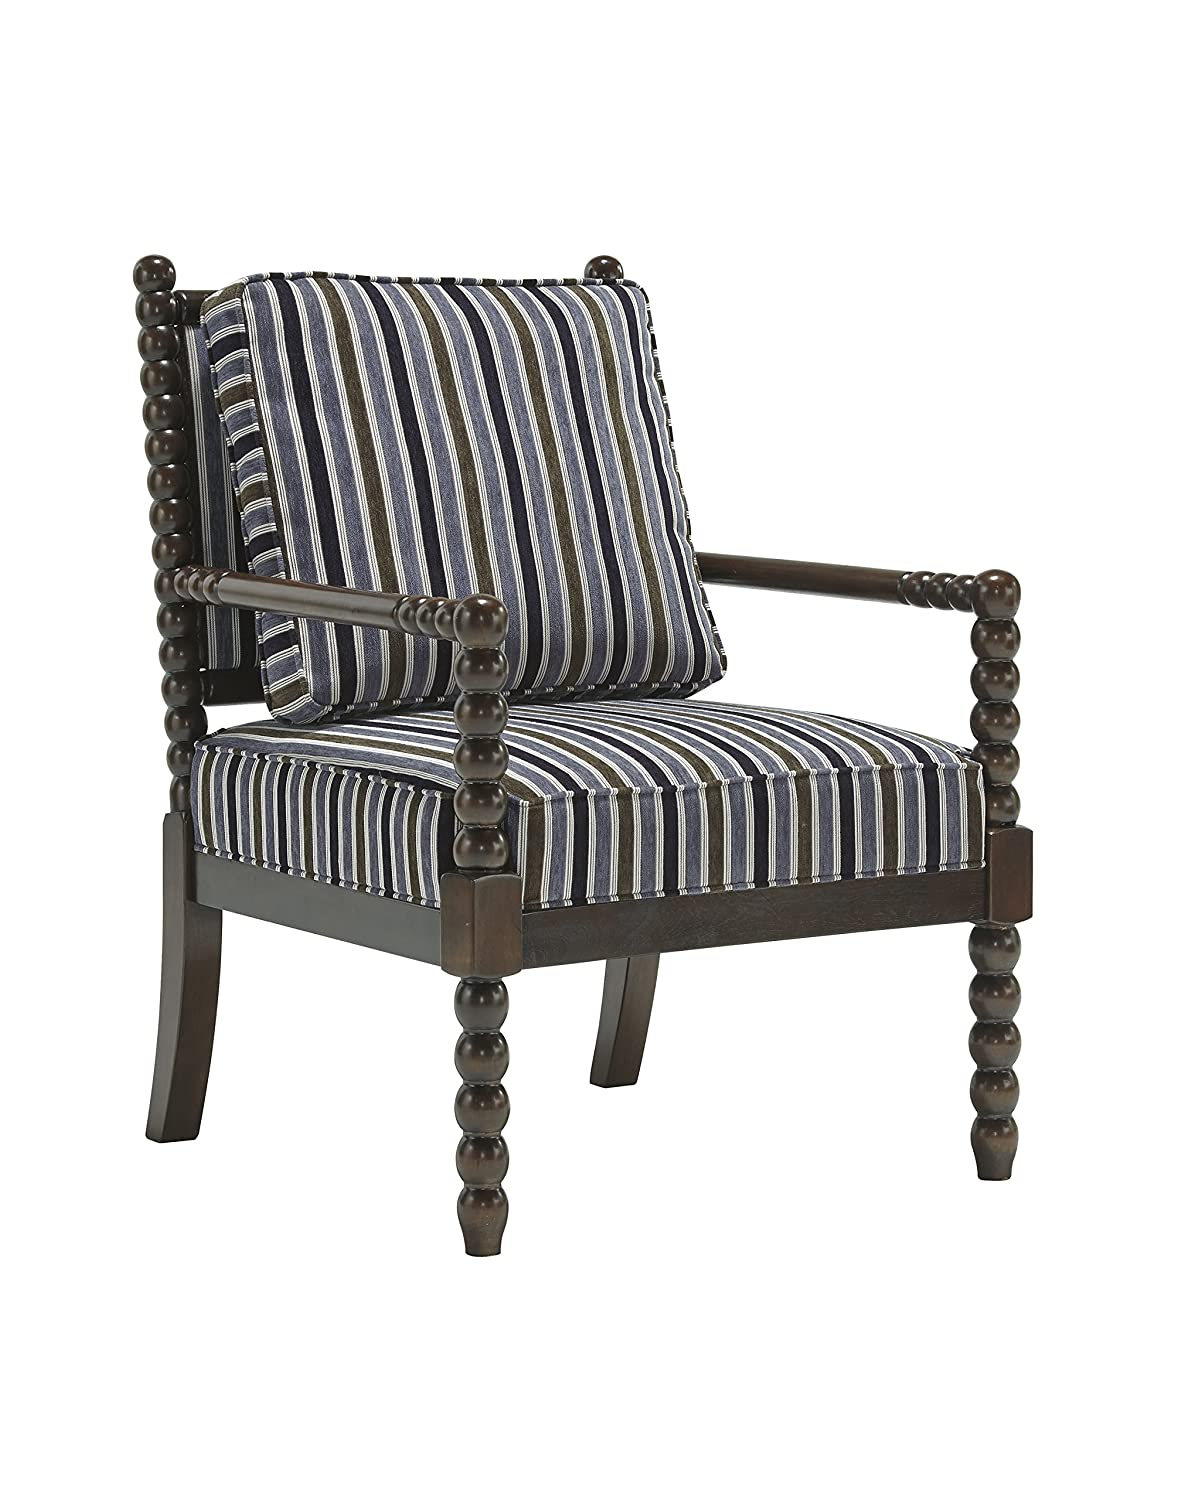 Amazon.com: Accent Chair in Regal: Kitchen & Dining